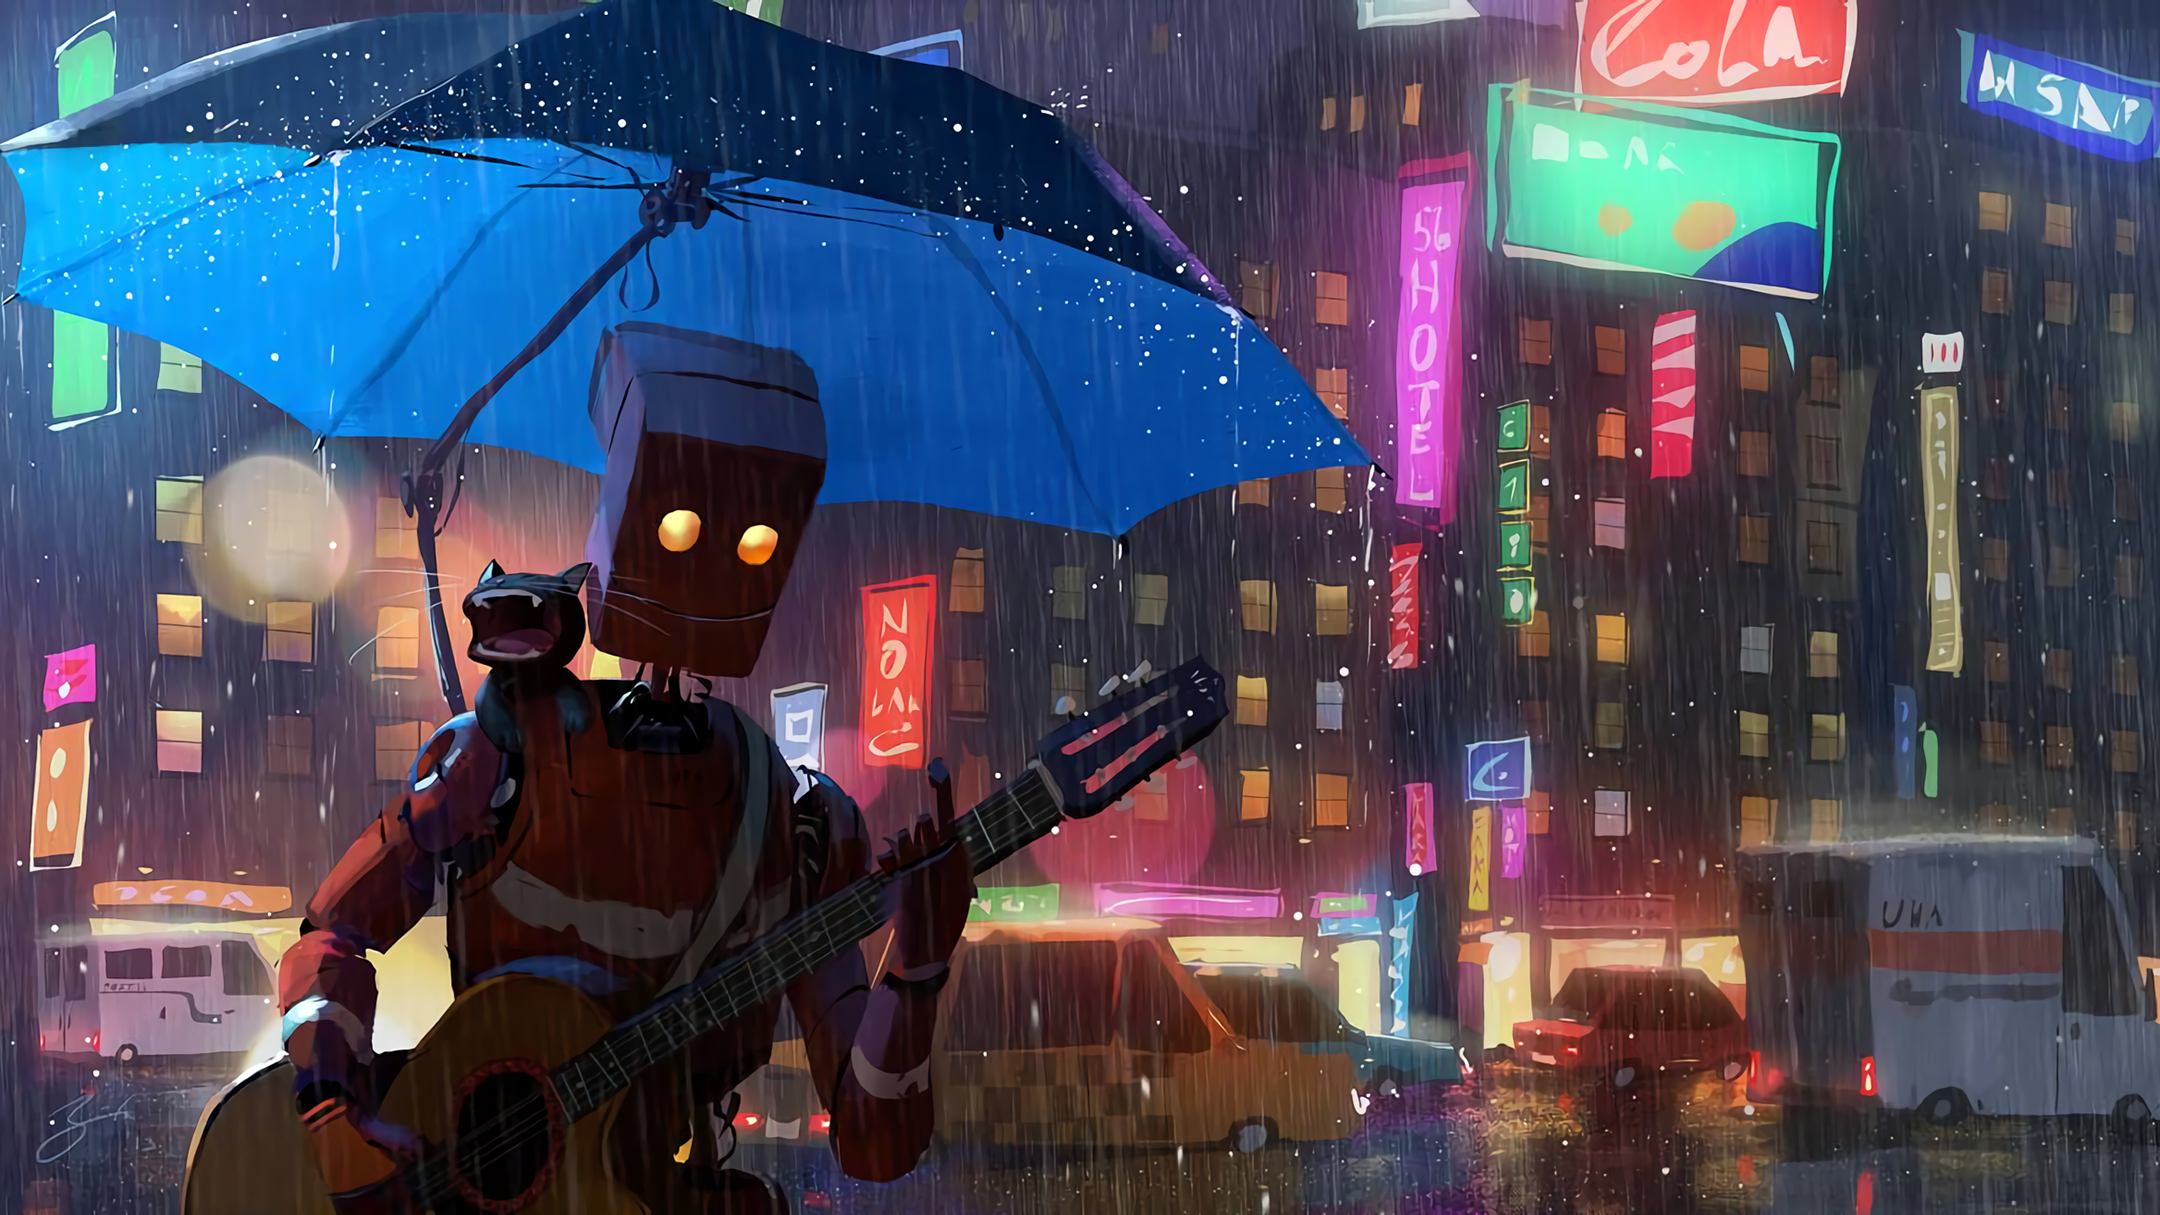 Singing In The Rain Hd Wallpaper Background Image 2160x1215